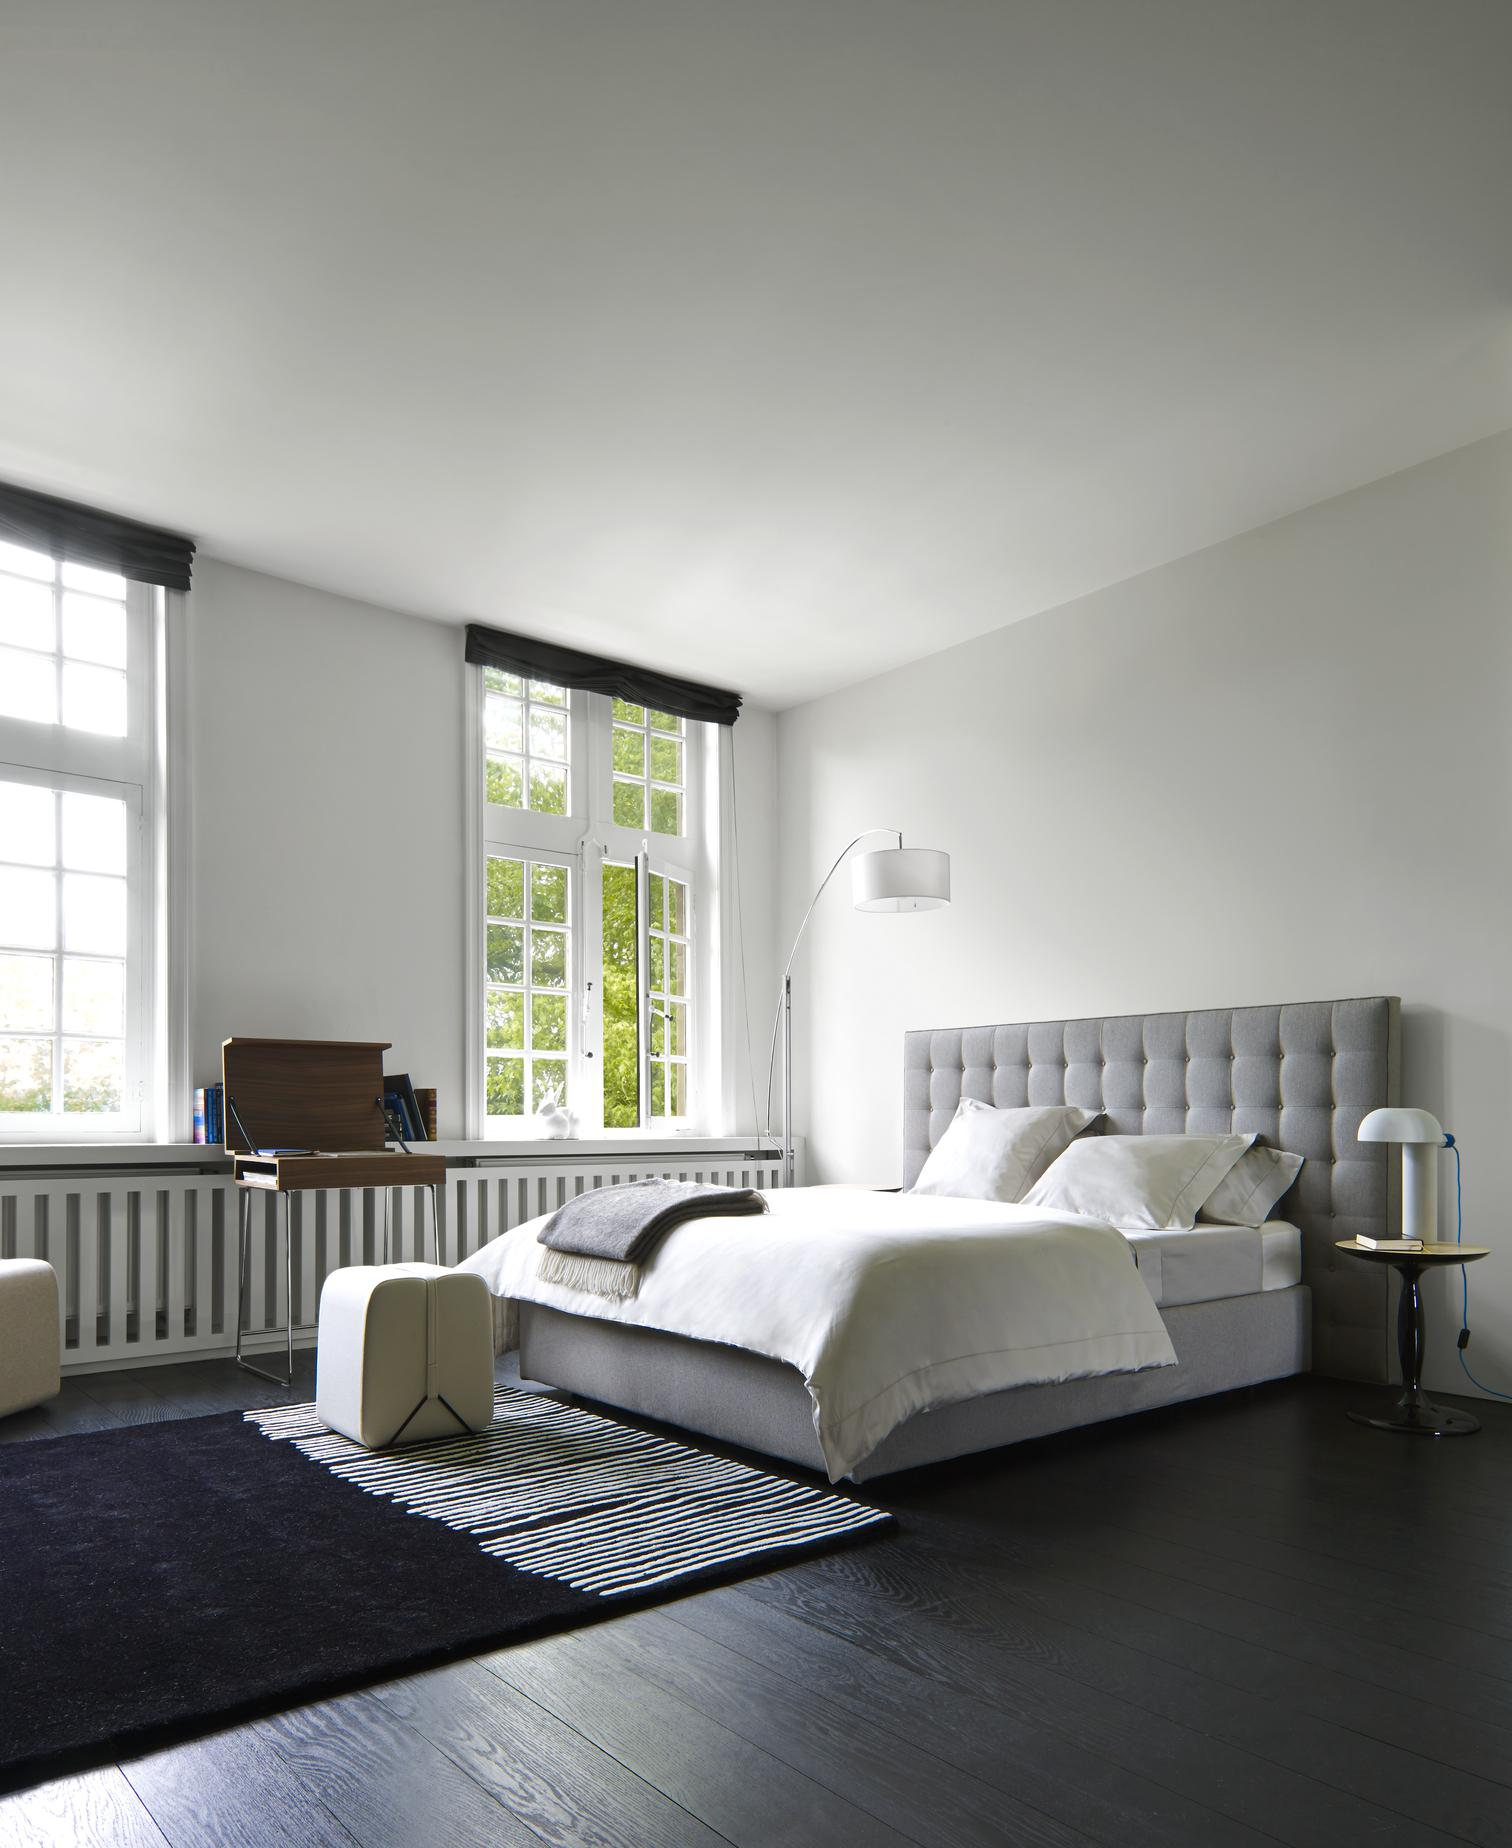 nador lits du designer ligne roset ligne roset site. Black Bedroom Furniture Sets. Home Design Ideas